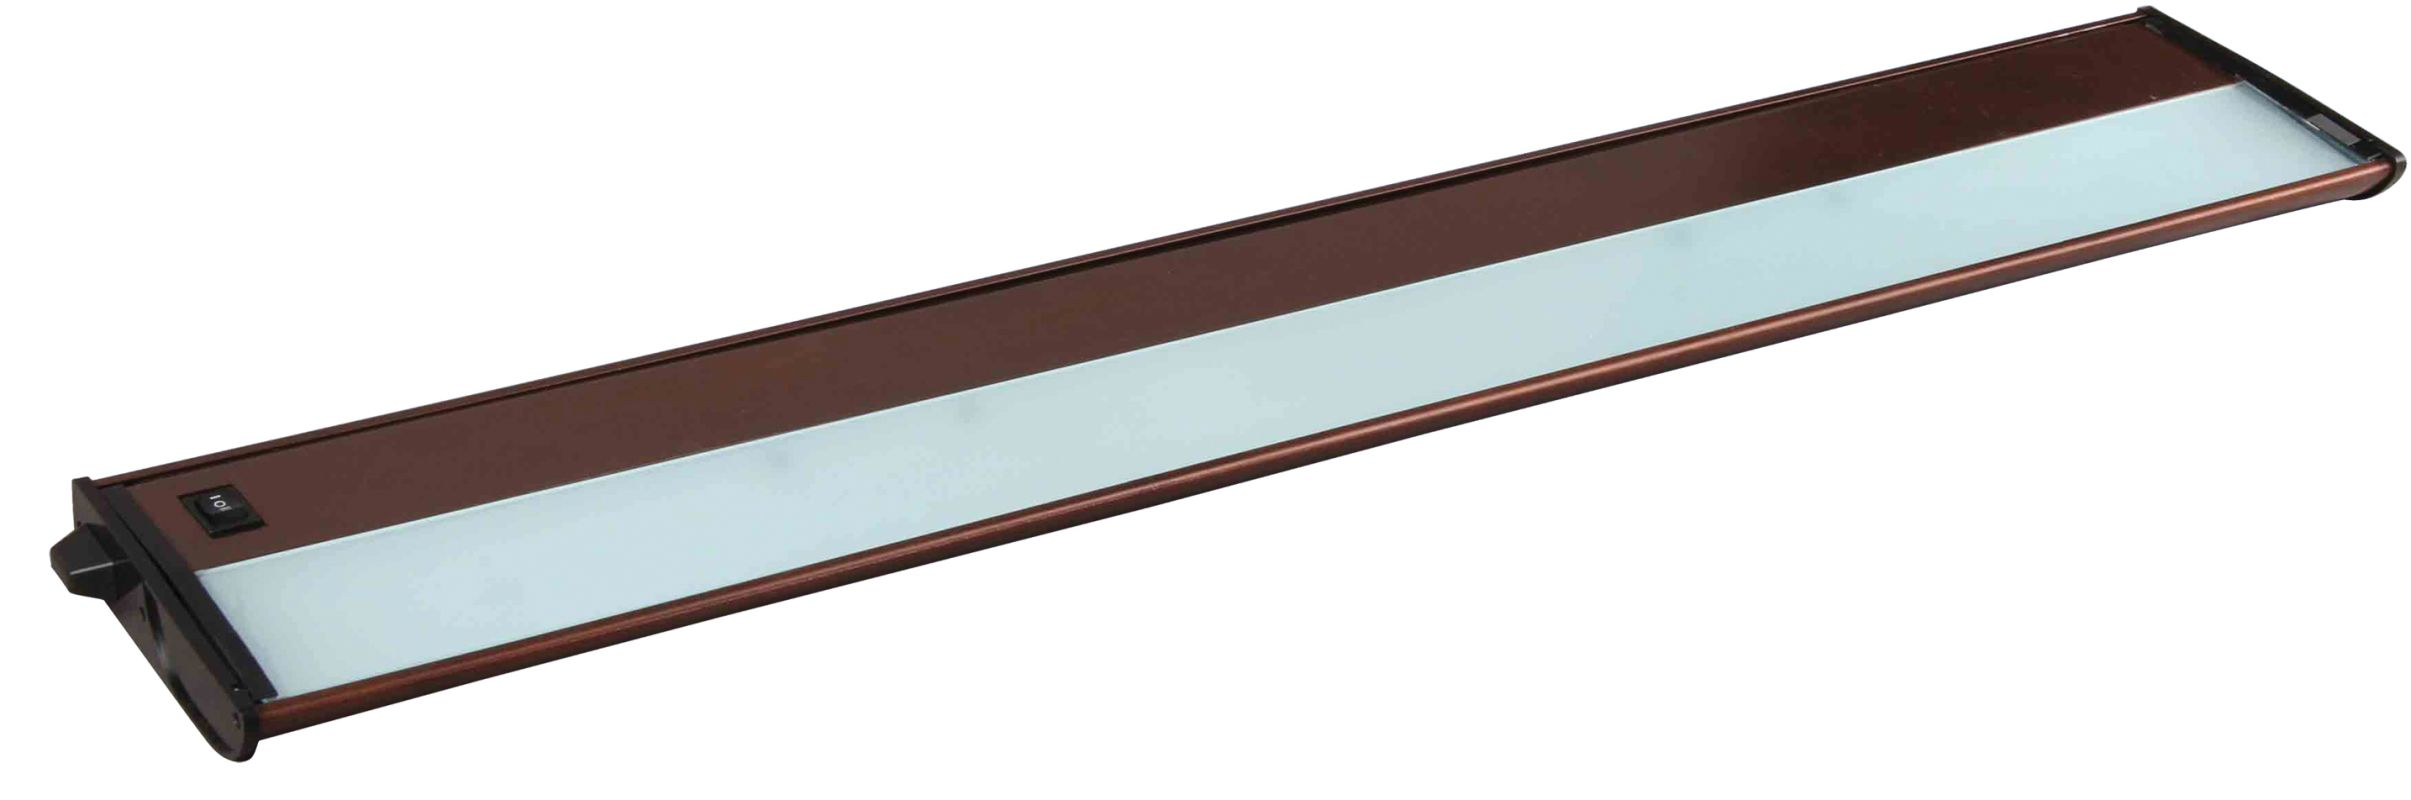 "Maxim 87843 30"" 4 Light Linkable Xenon Under Cabinet Light from the"